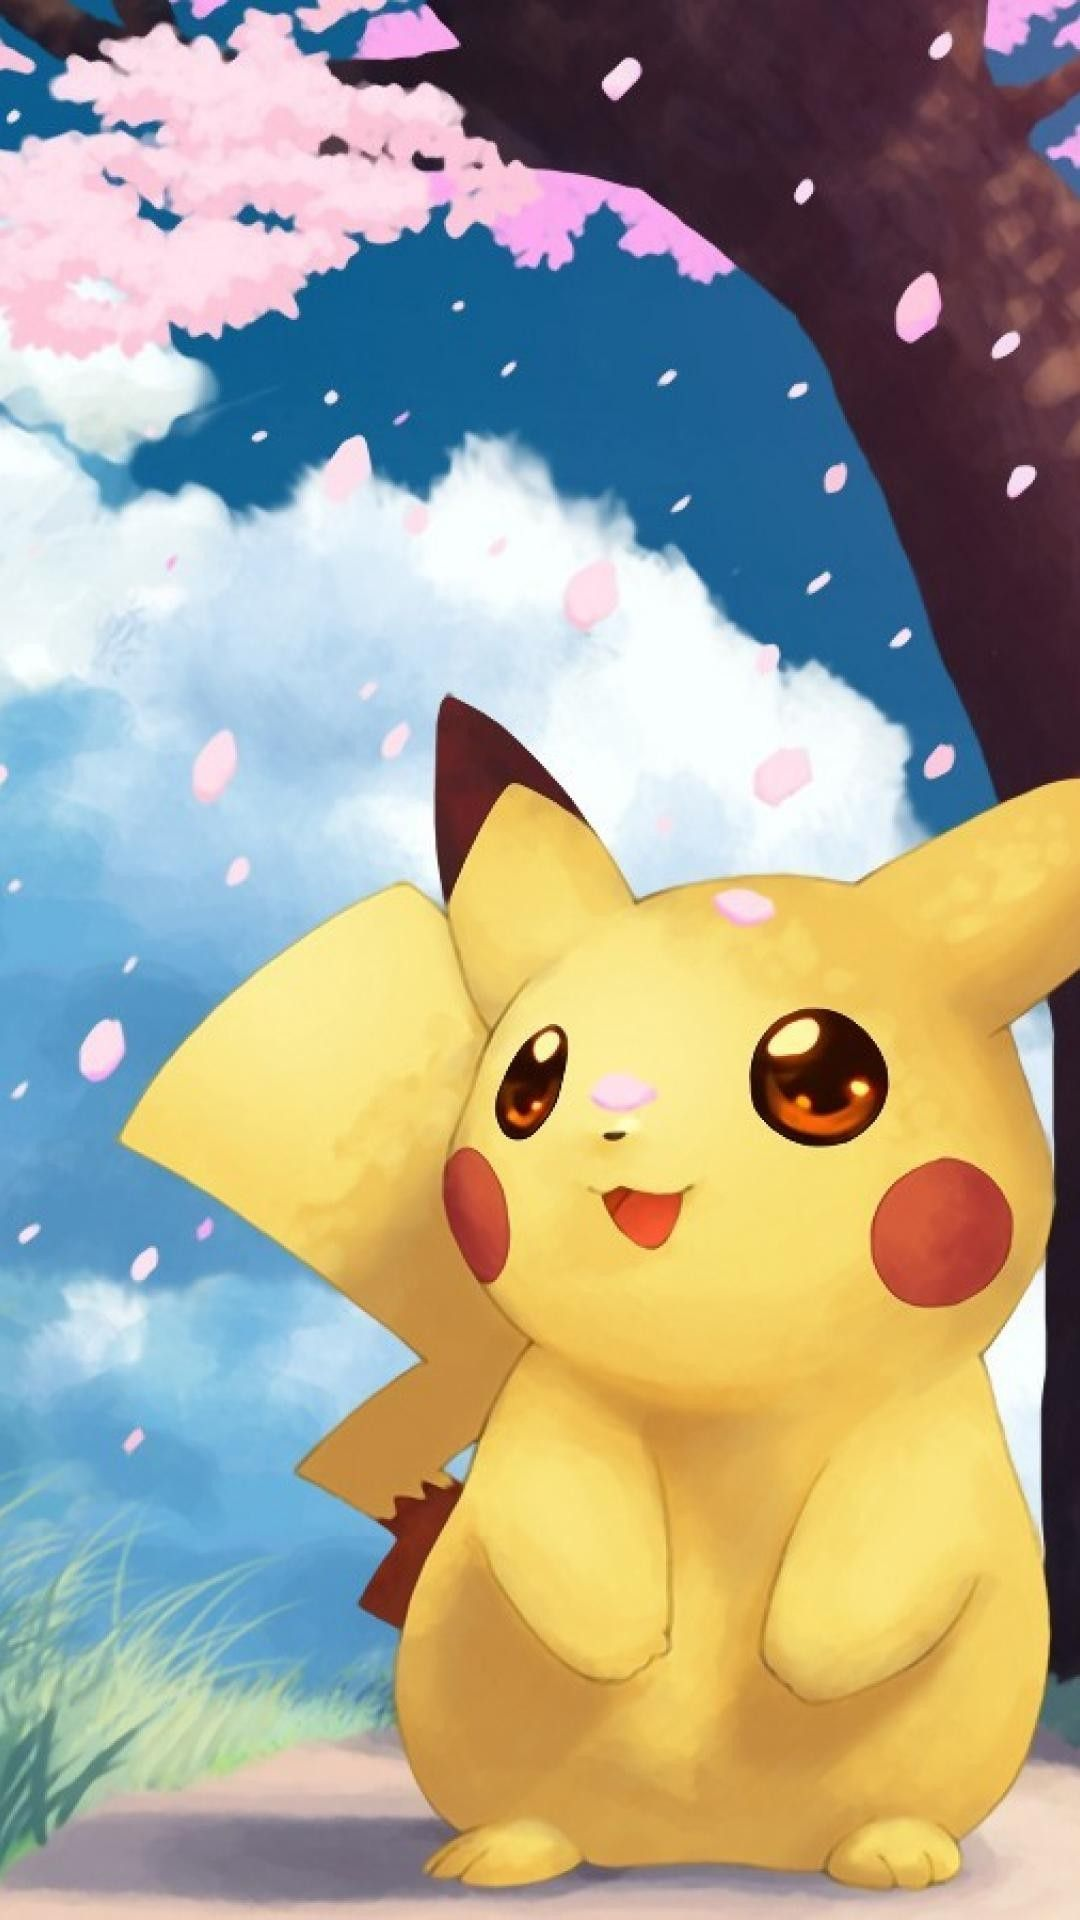 New Cute Pokemon Wallpaper 1080x1920 High Resolution Cute Pokemon Wallpaper Pikachu Art Cool Pokemon Wallpapers